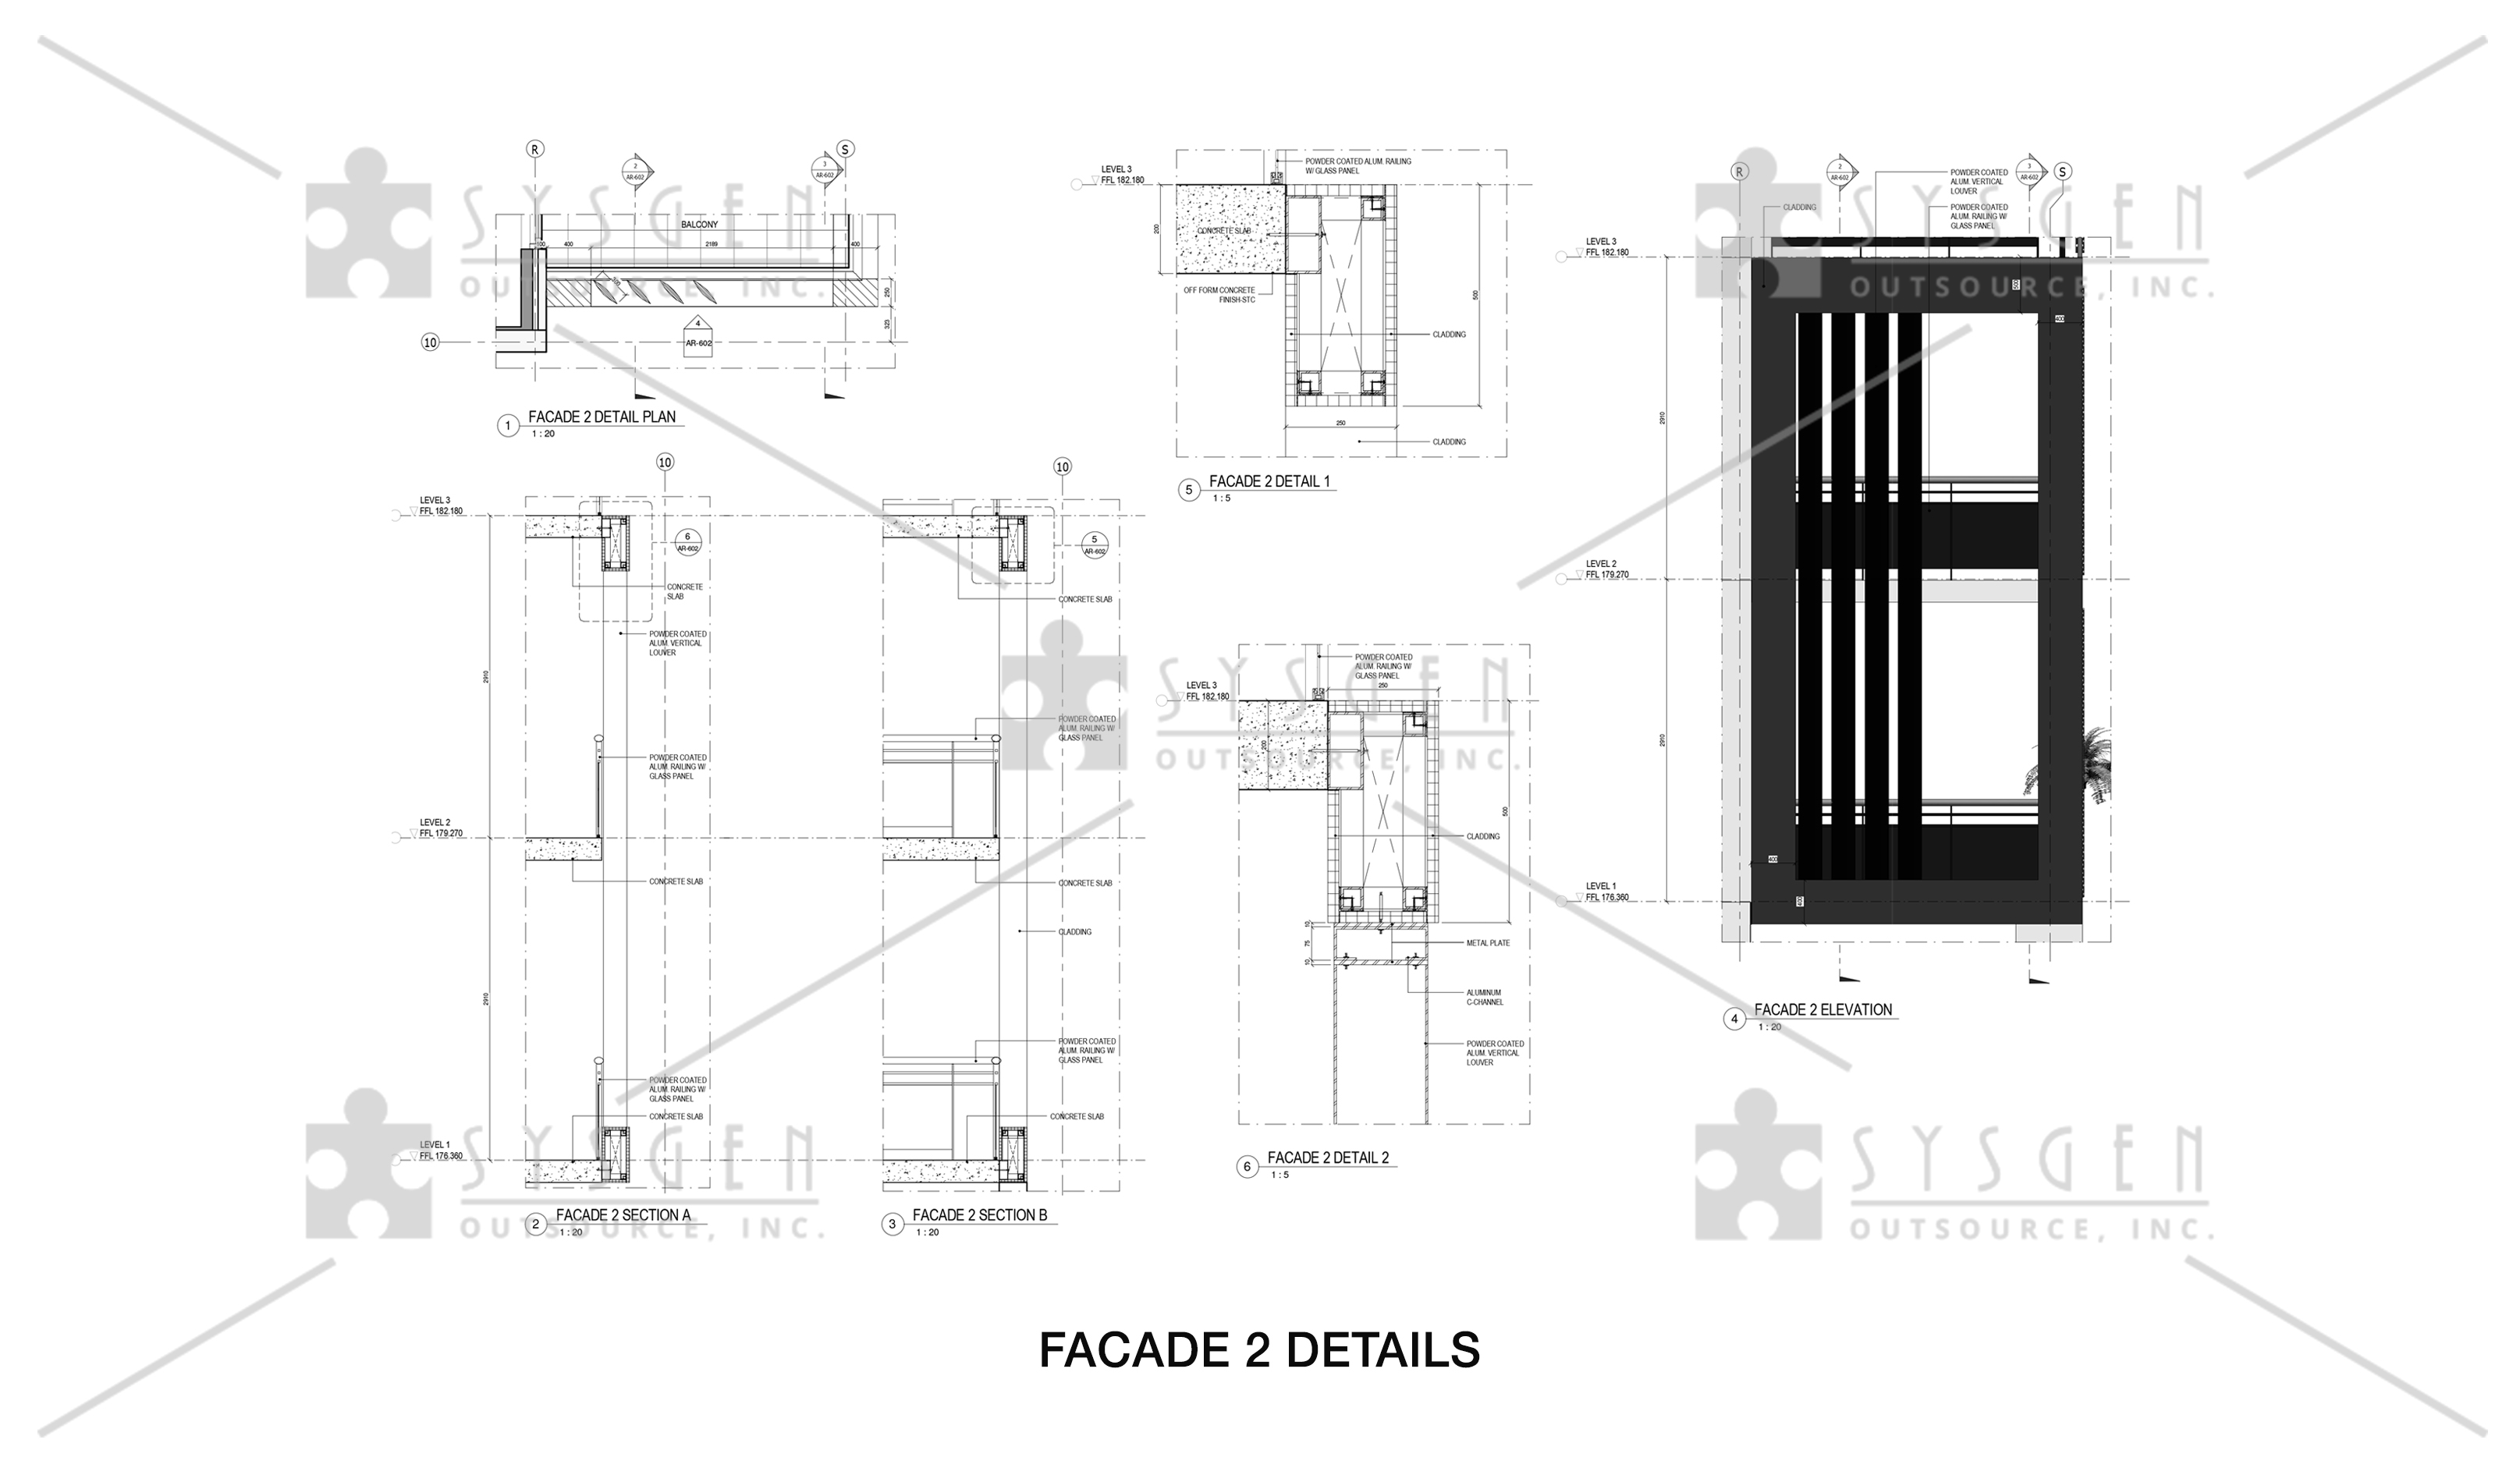 sysgen-outsource-cad-outsourcing-services-cad-conversion-revit-4-storey-residential20